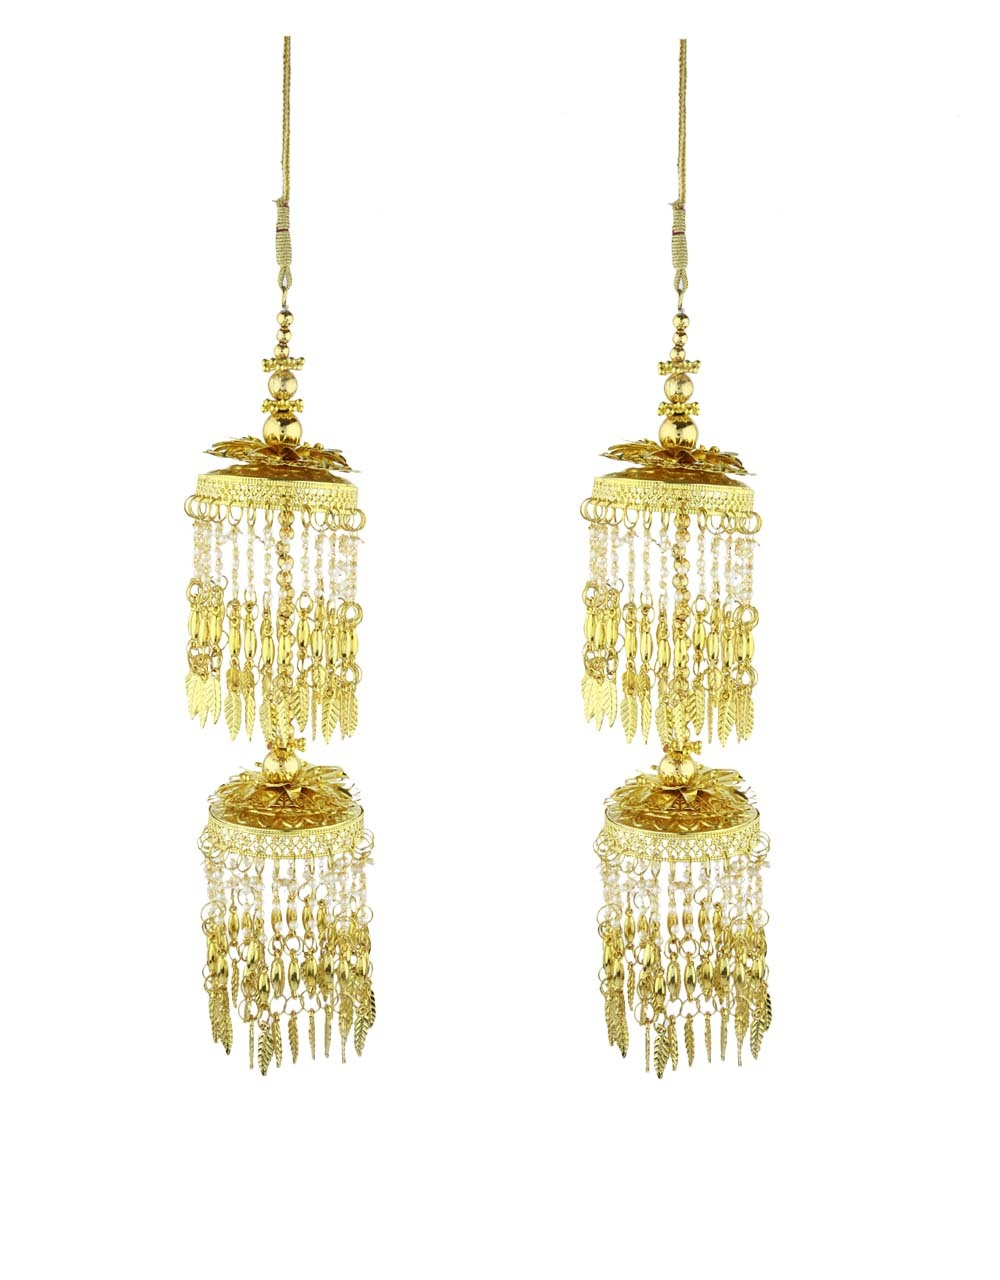 Golden Finished Double Tier Appealing Pair of Kalira for Women